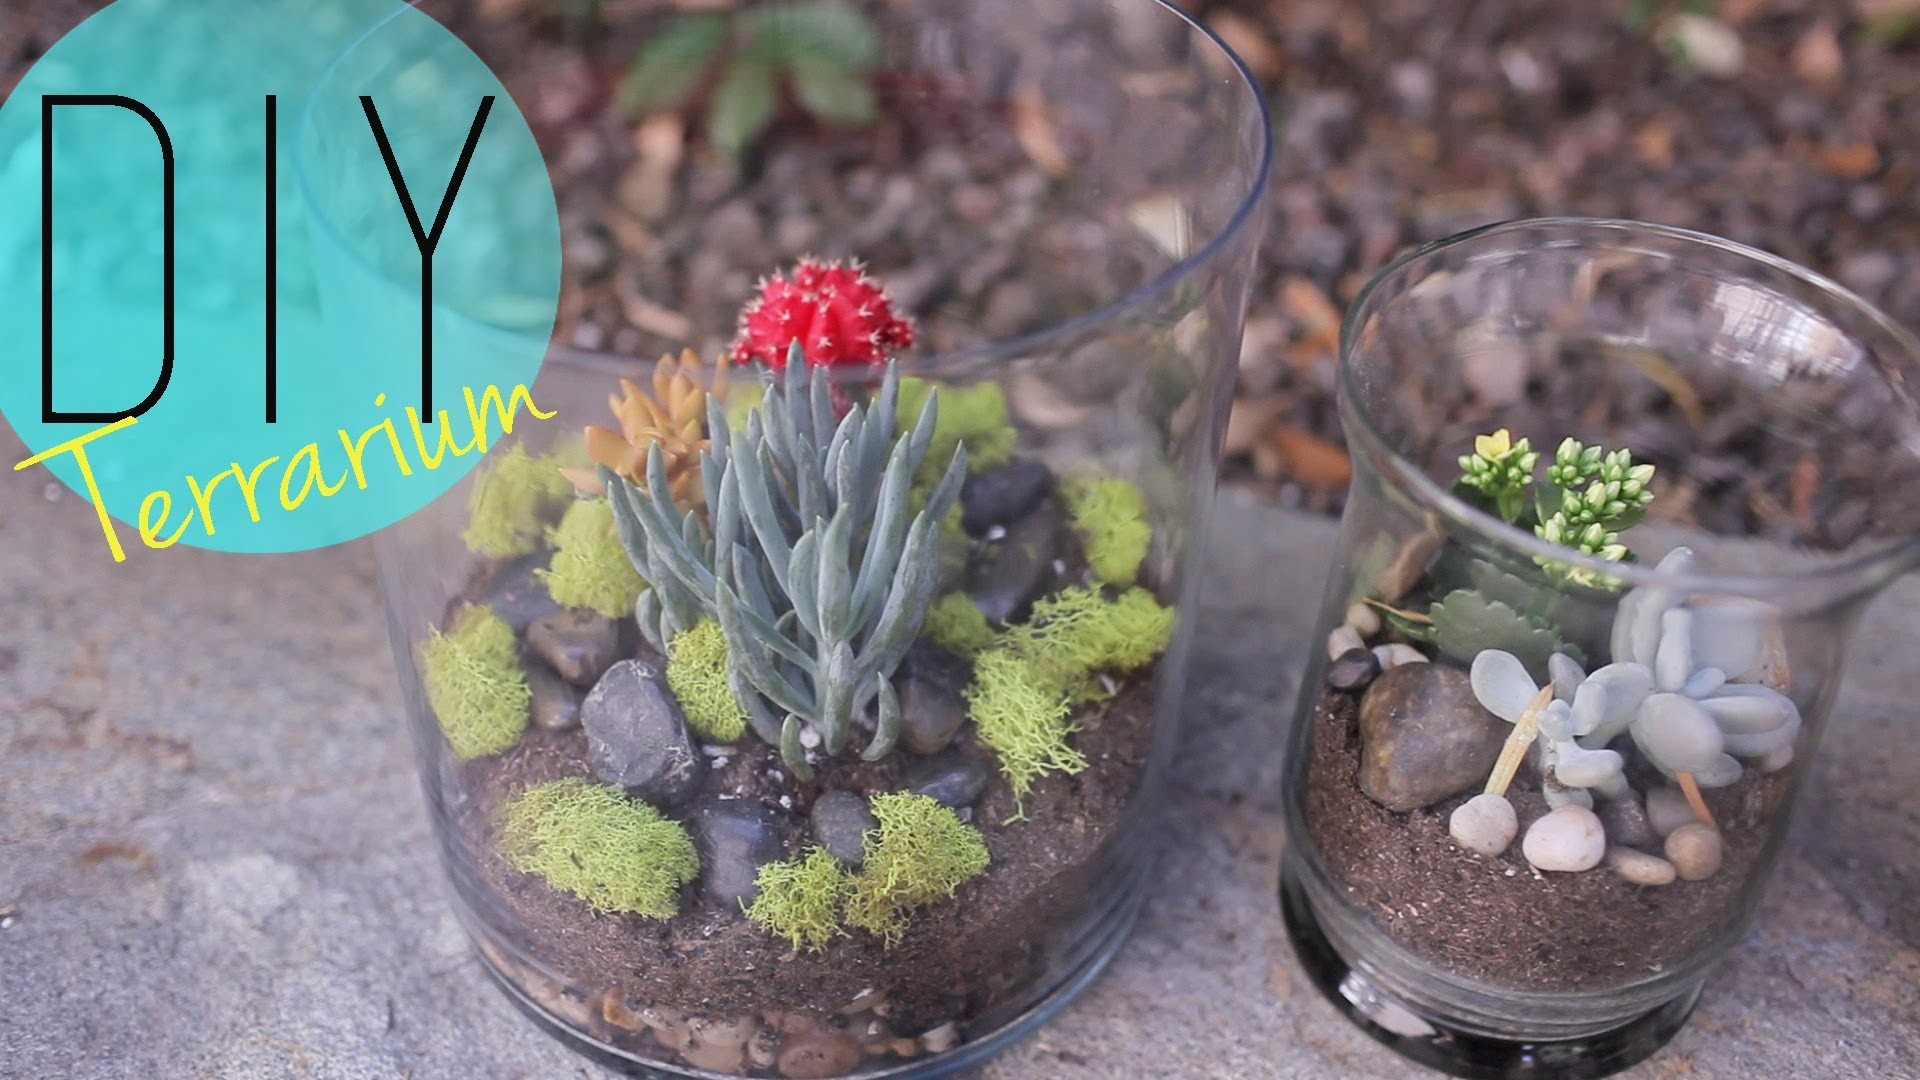 DIY Indoor Garden - Cactus Terrarium {How to} by ANNEORSHINE